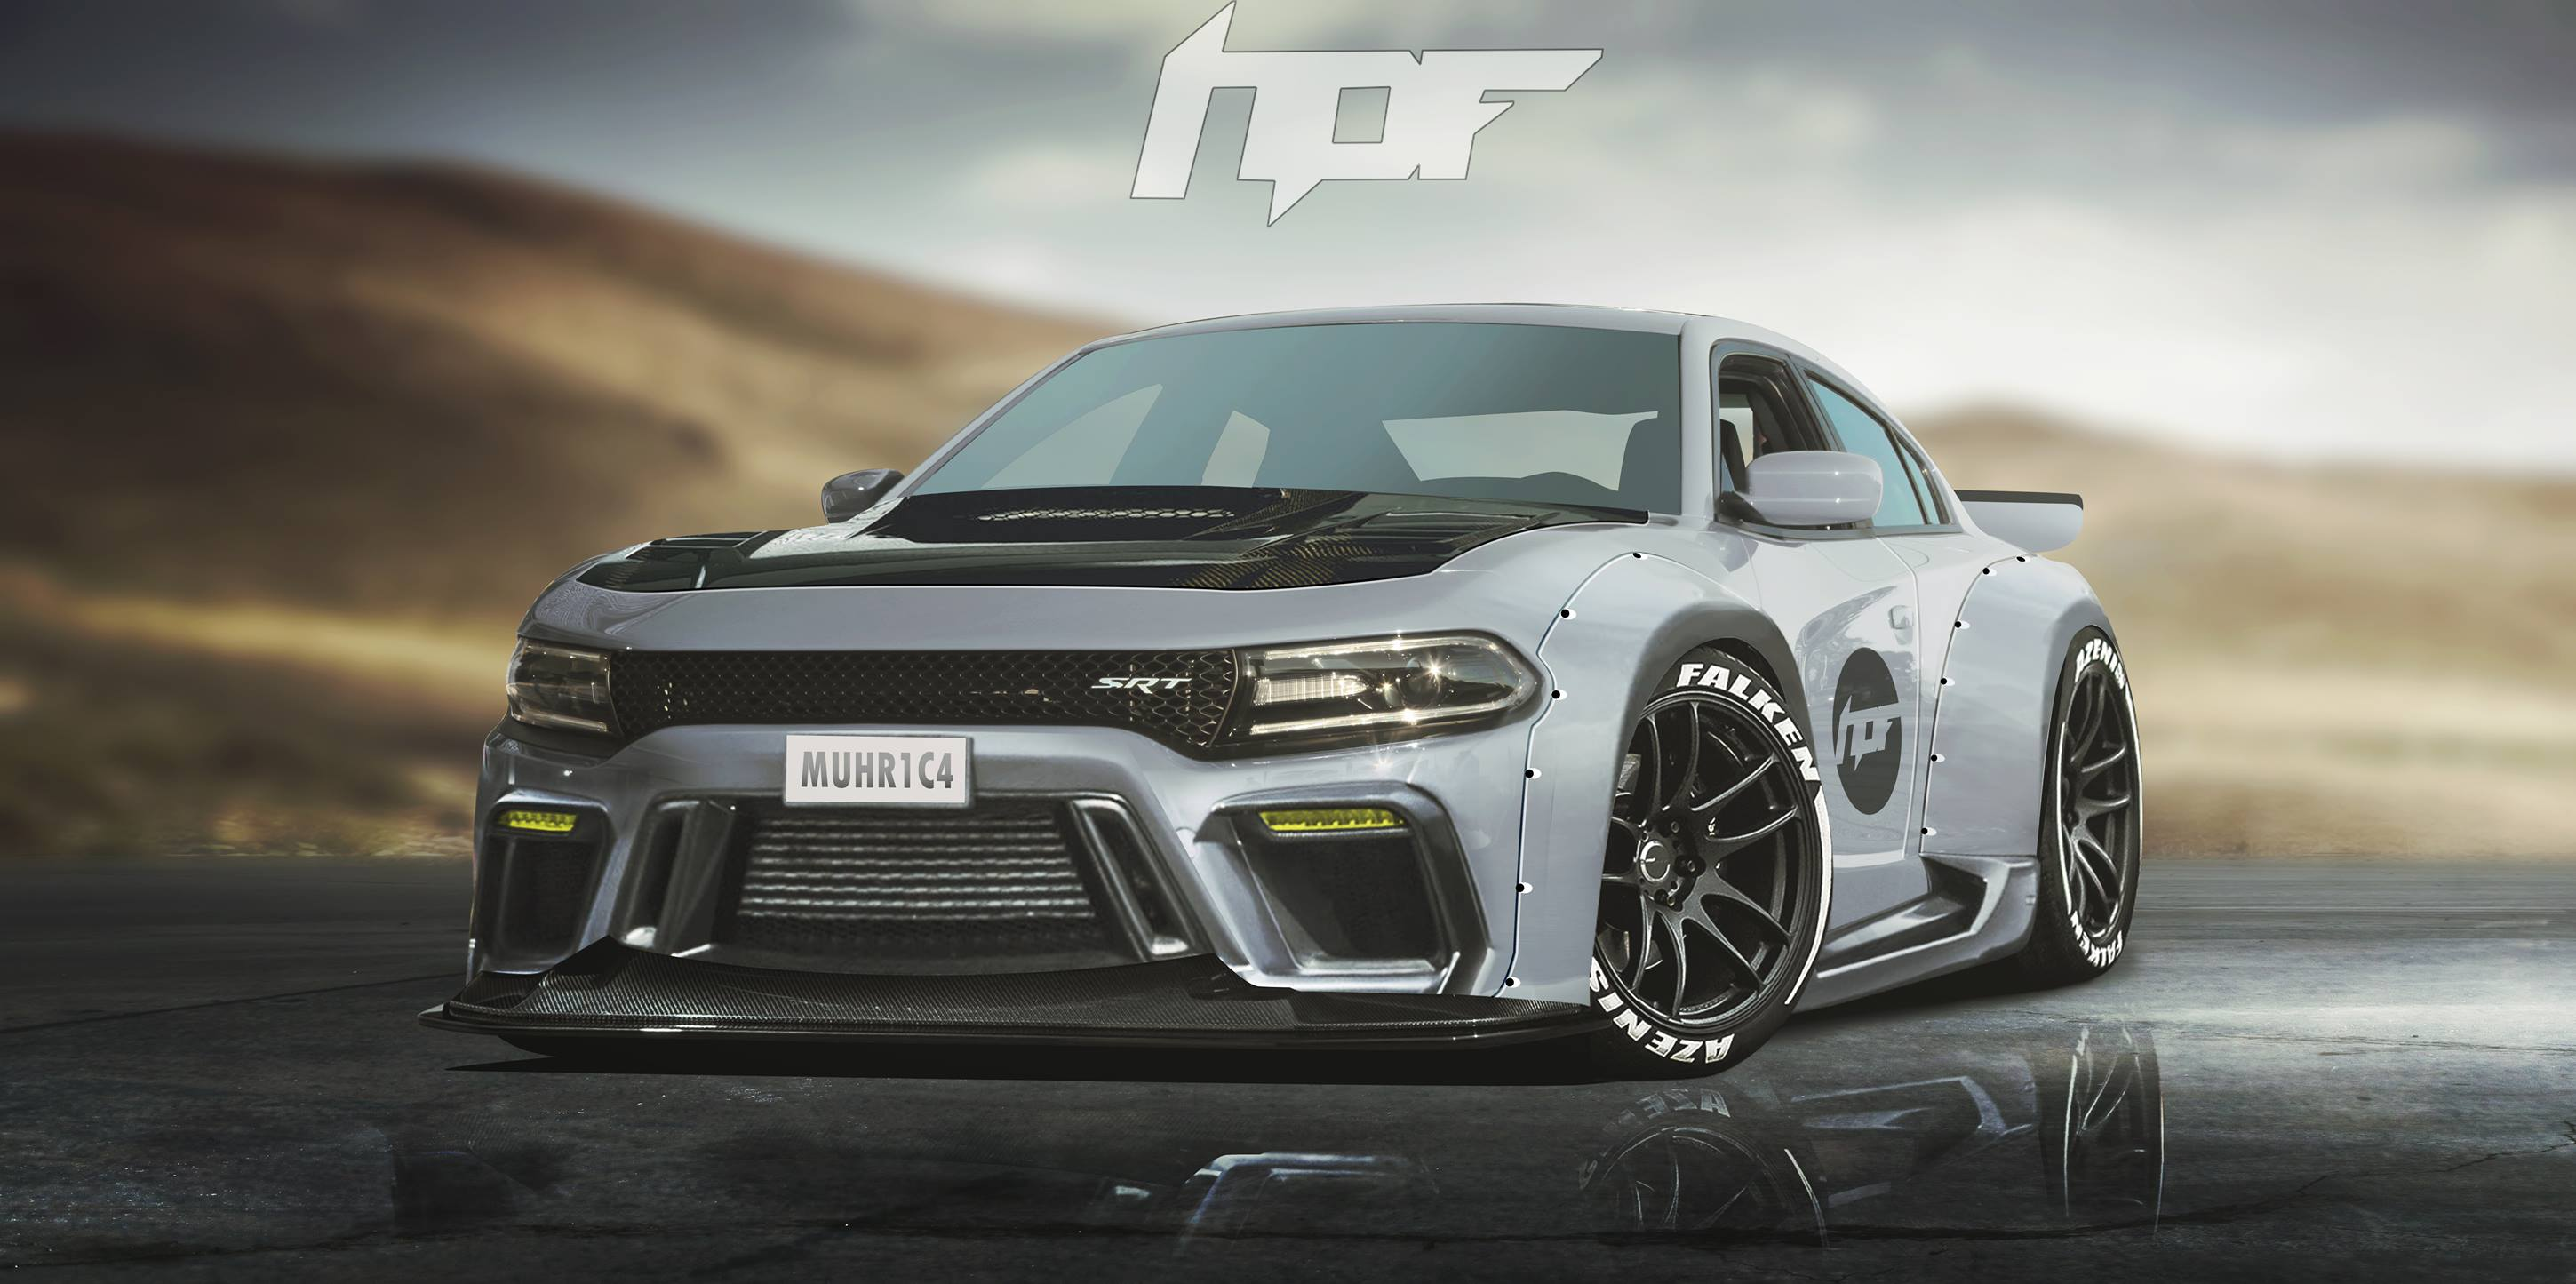 2 Door Charger Hellcat >> Widebody Dodge Charger Hellcat Rendered As the Coupe Dodge ...